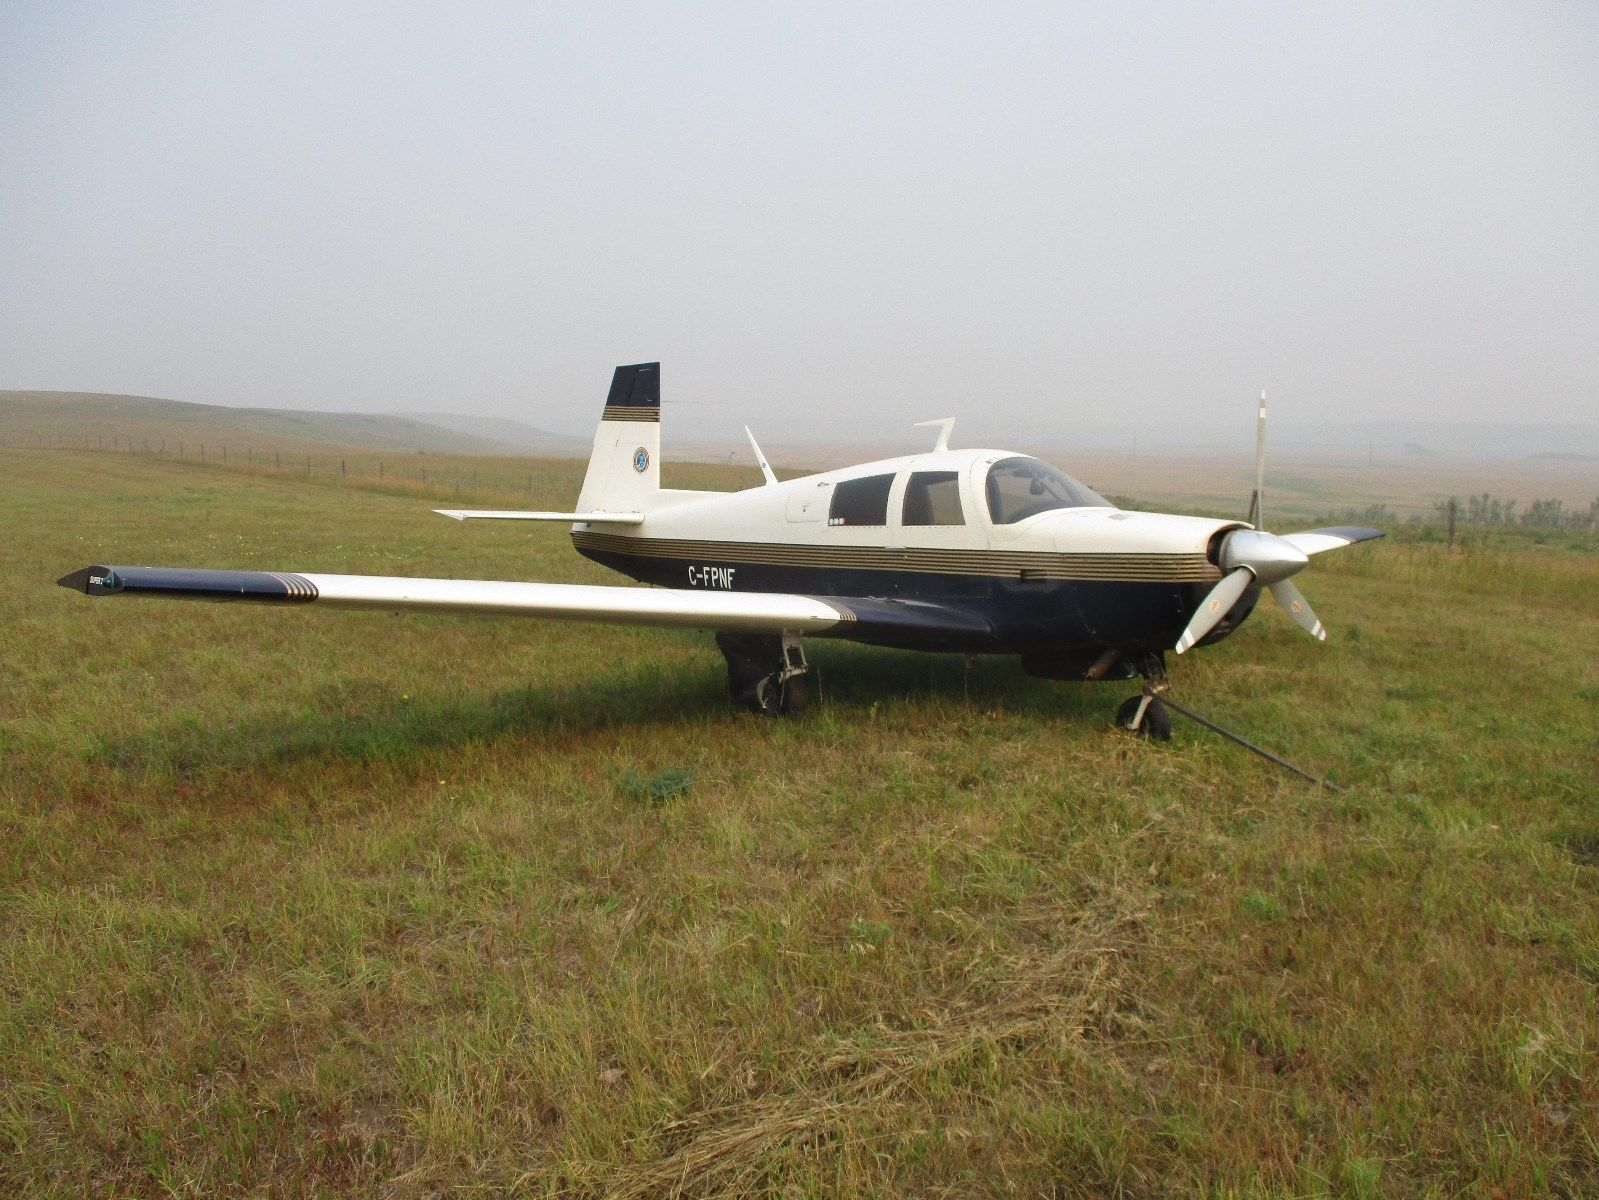 modified 1966 Mooney M20E aircraft